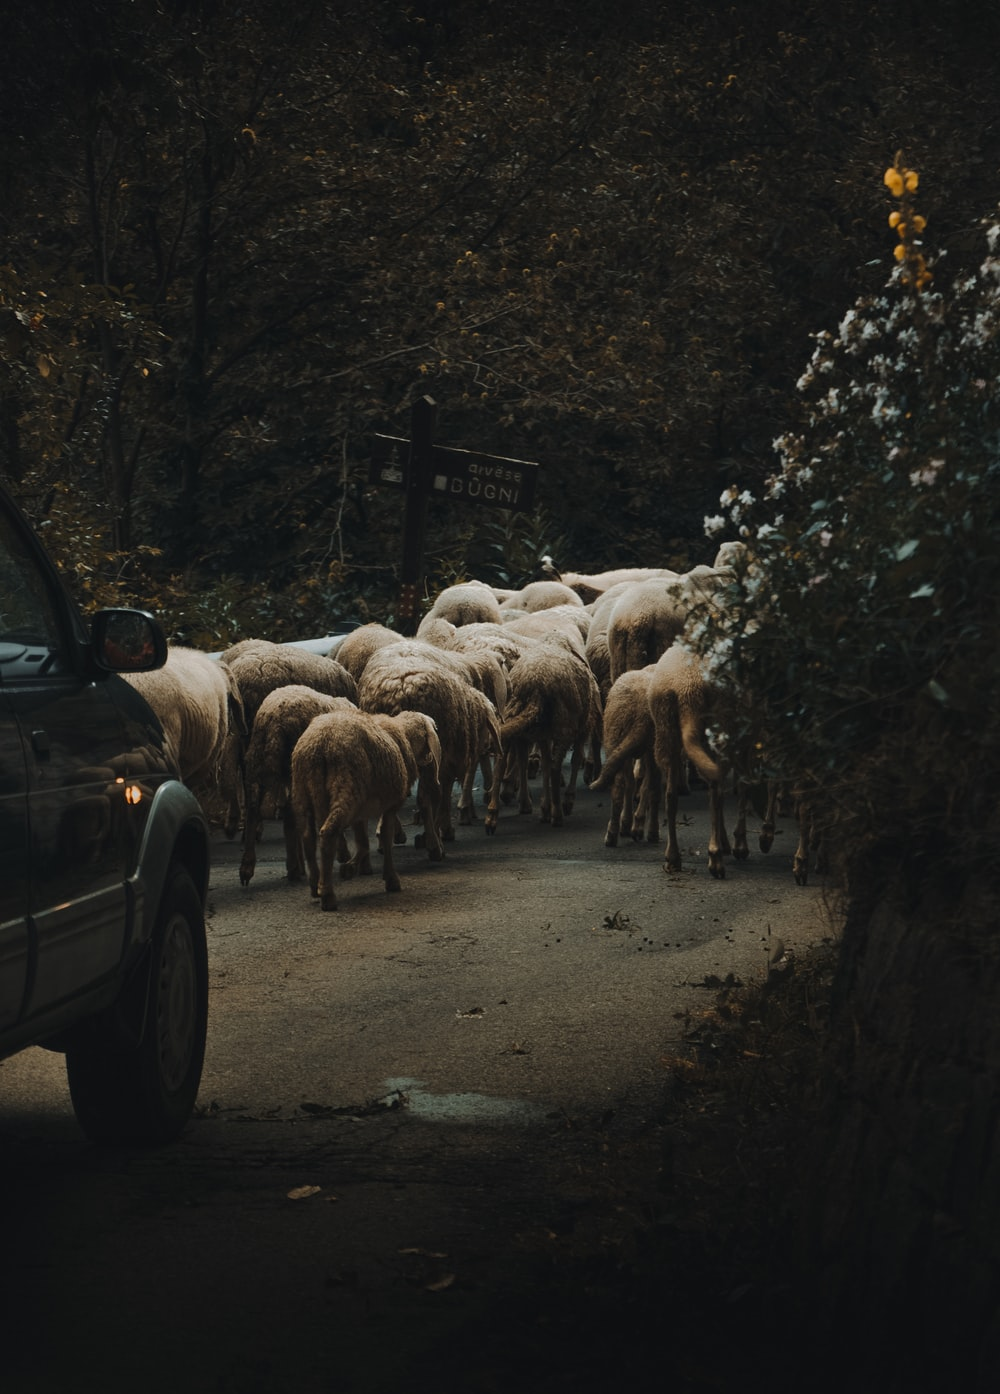 car in front of the heard of animals